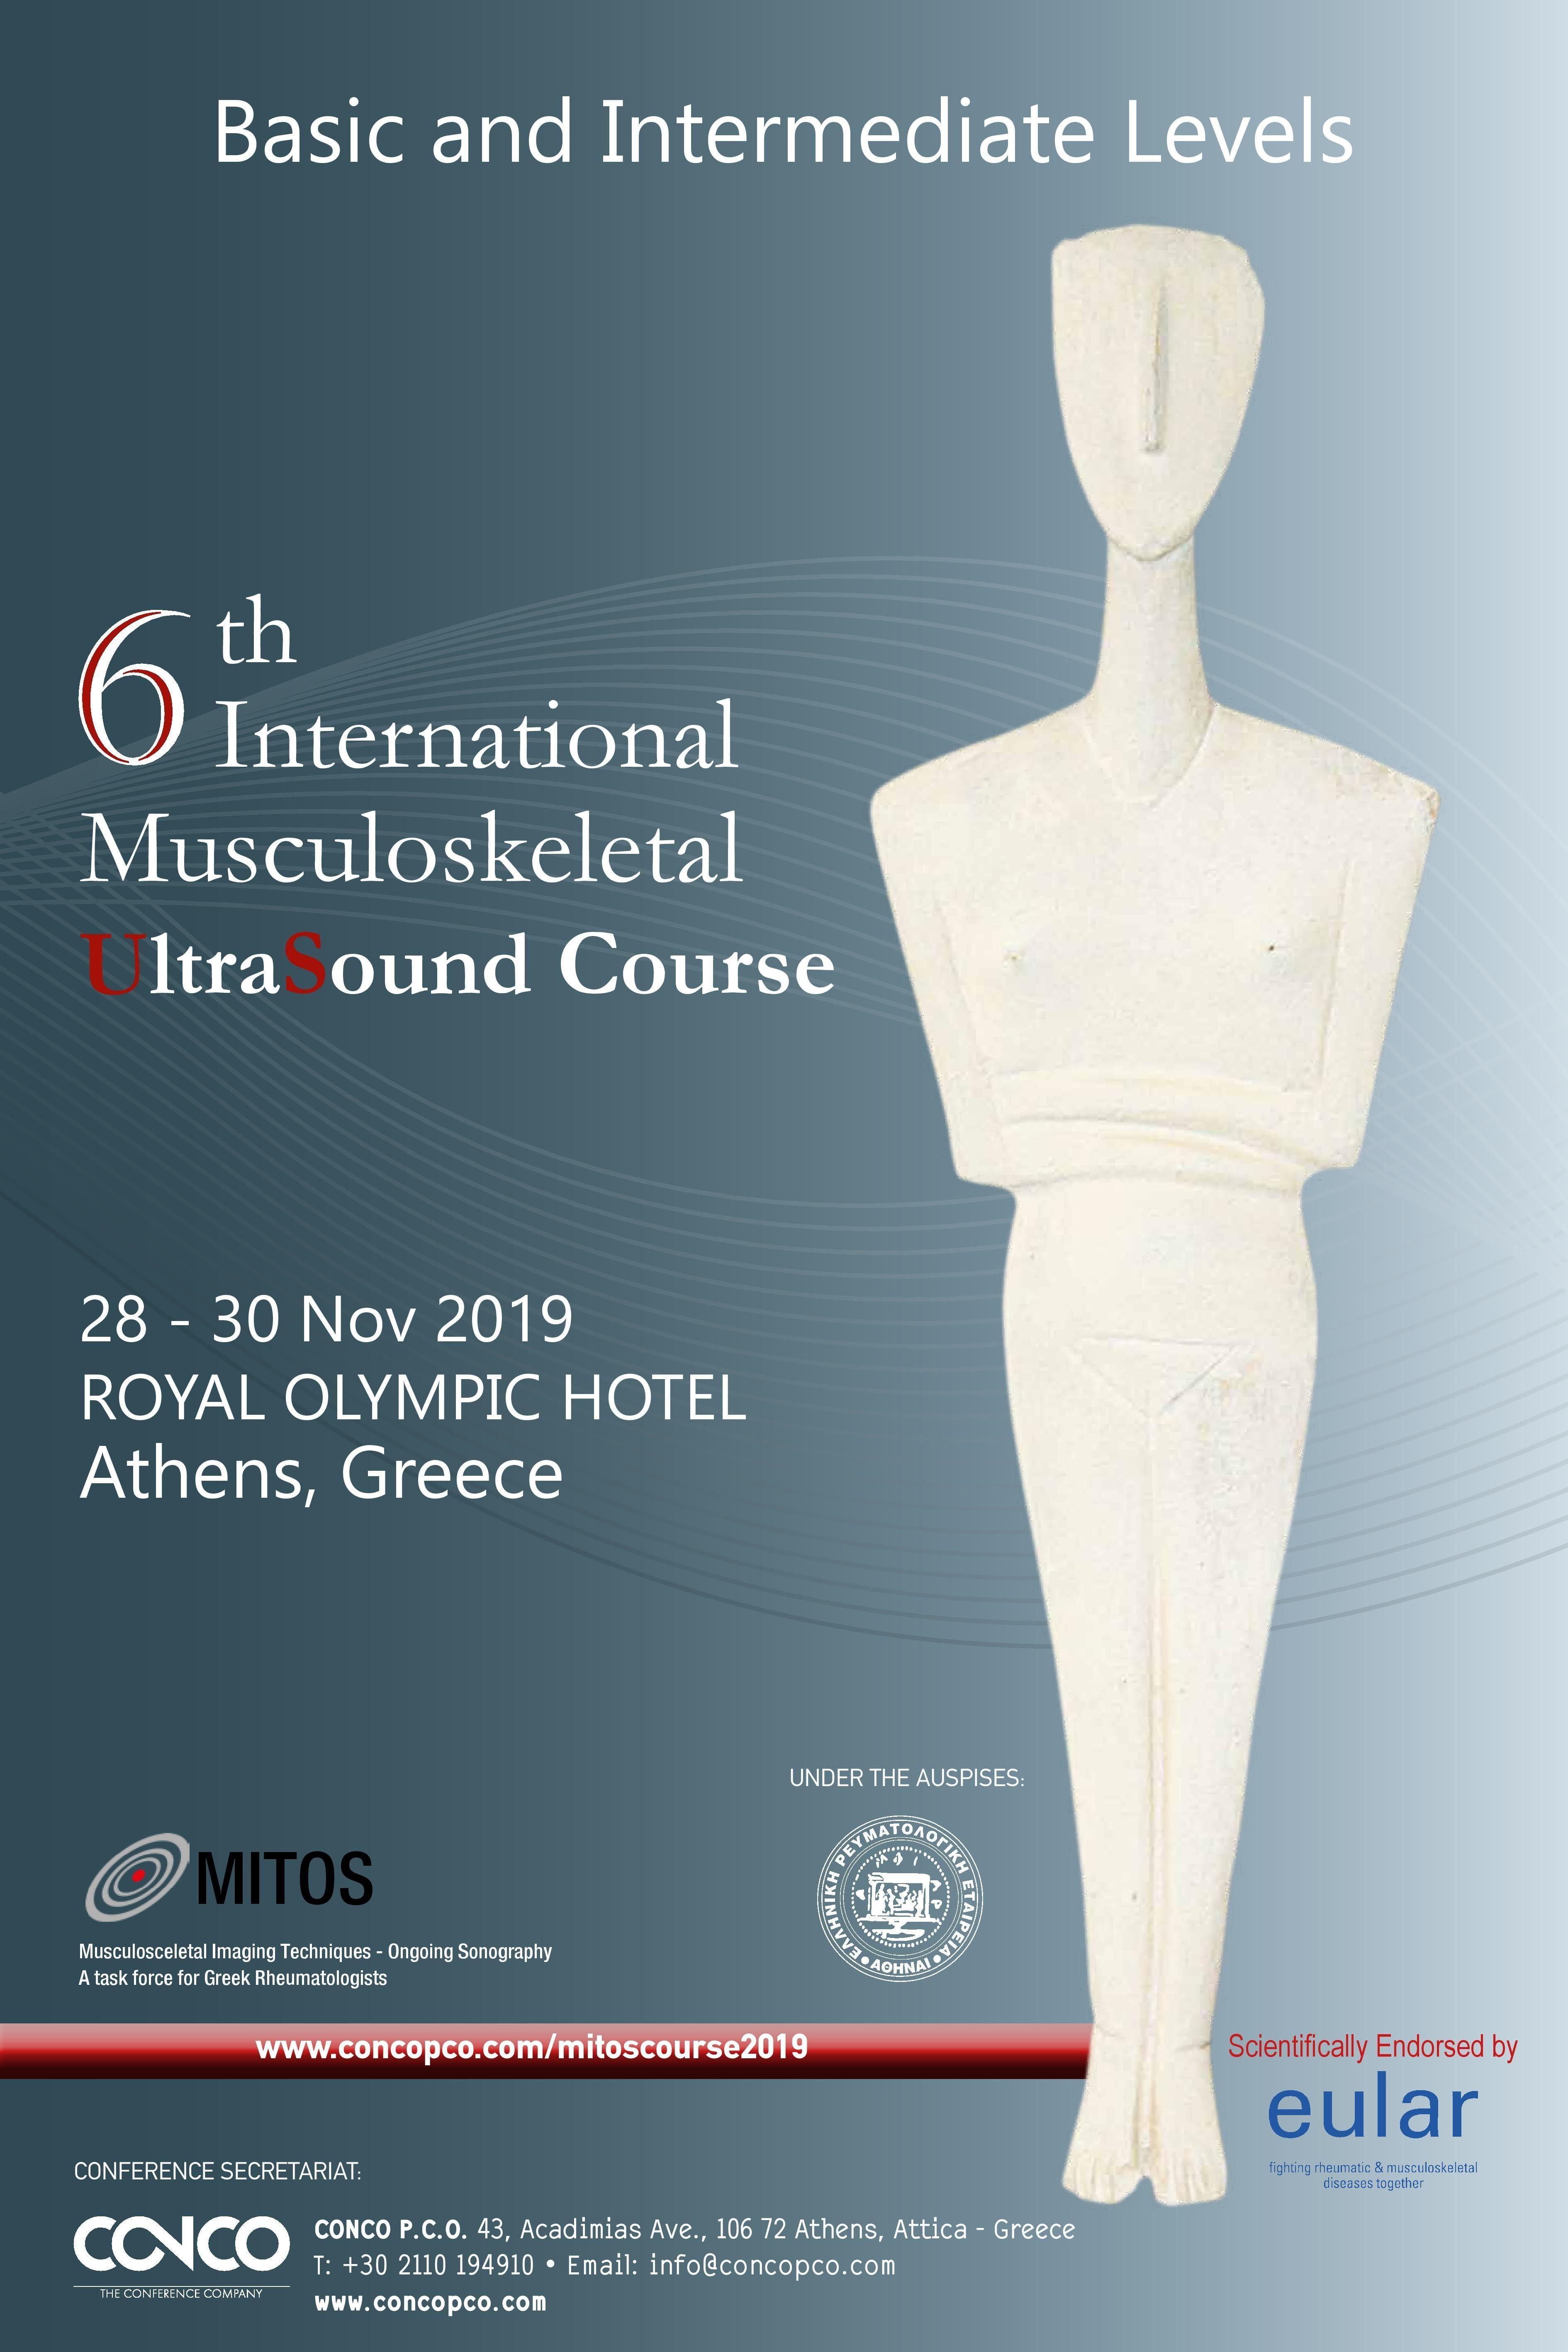 6th INTERNATIONAL MUSCULOSKELETAL ULTRASOUND COURSE